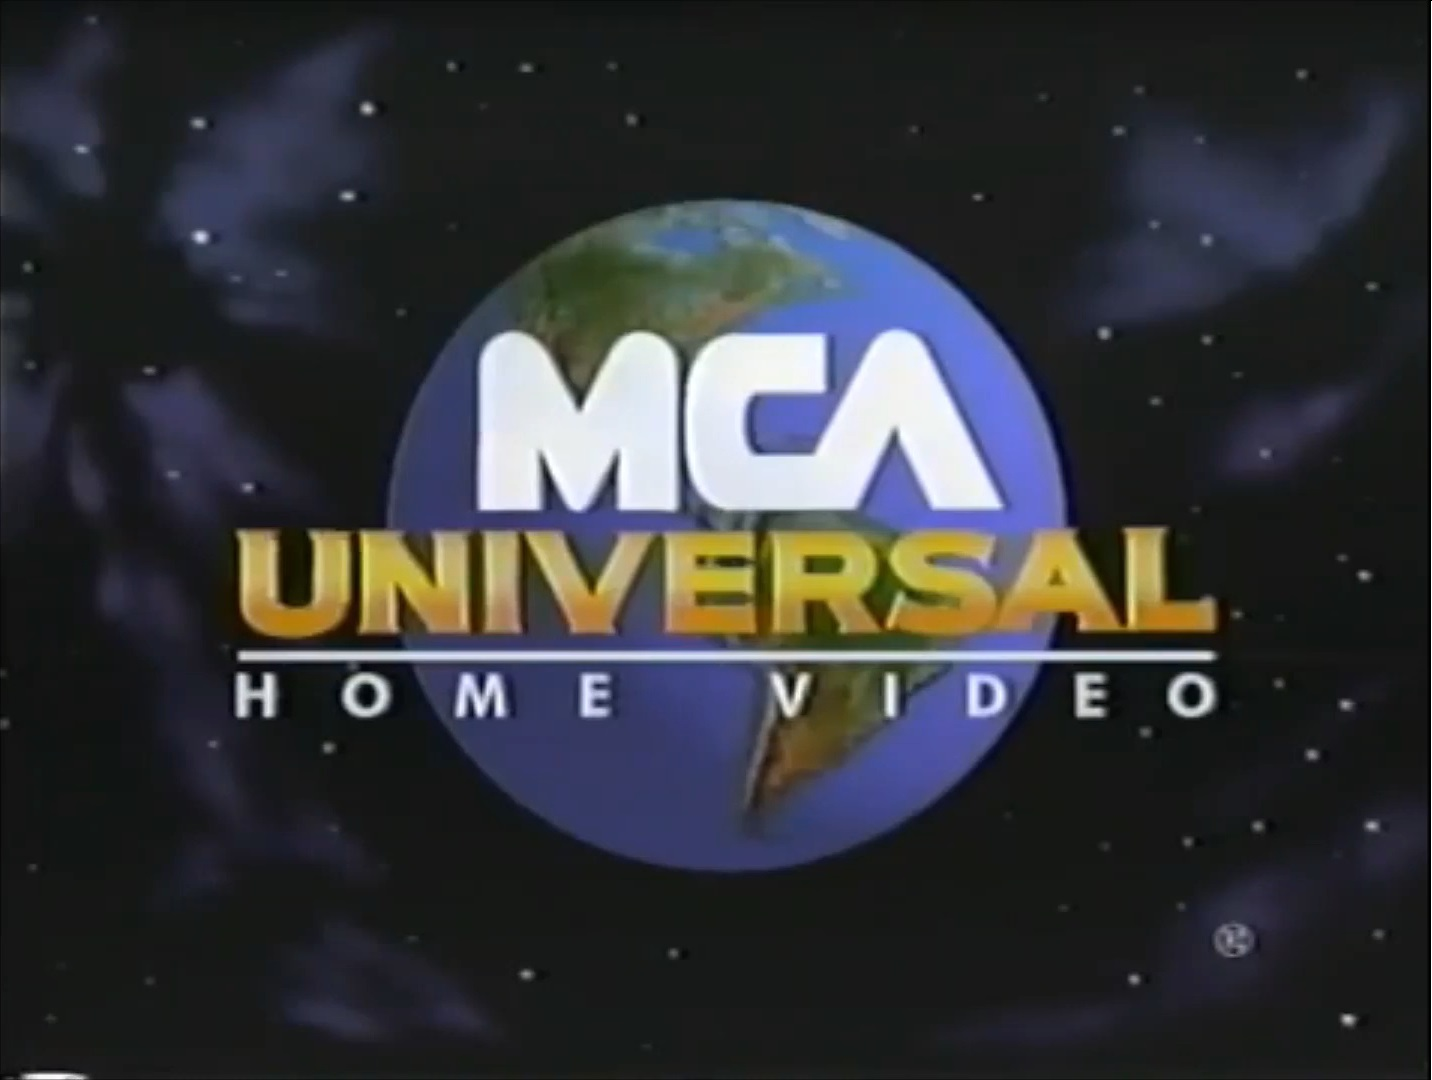 File:MCA Universal Video.jpg